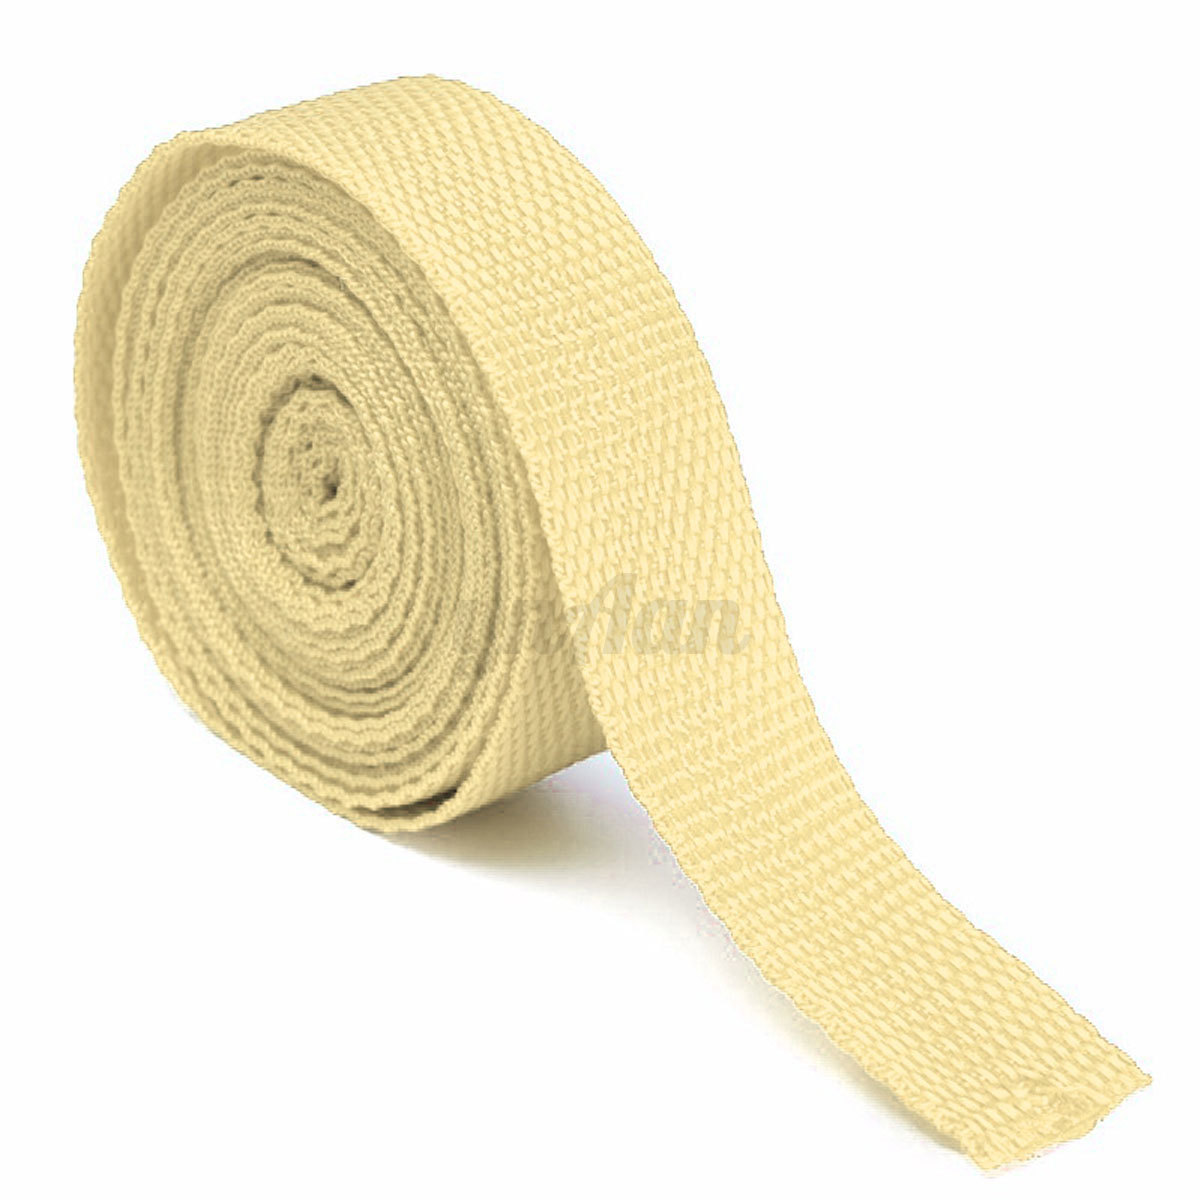 25mmx4m Roll Nylon Fabric Tape Strap Webbing Bag Binding